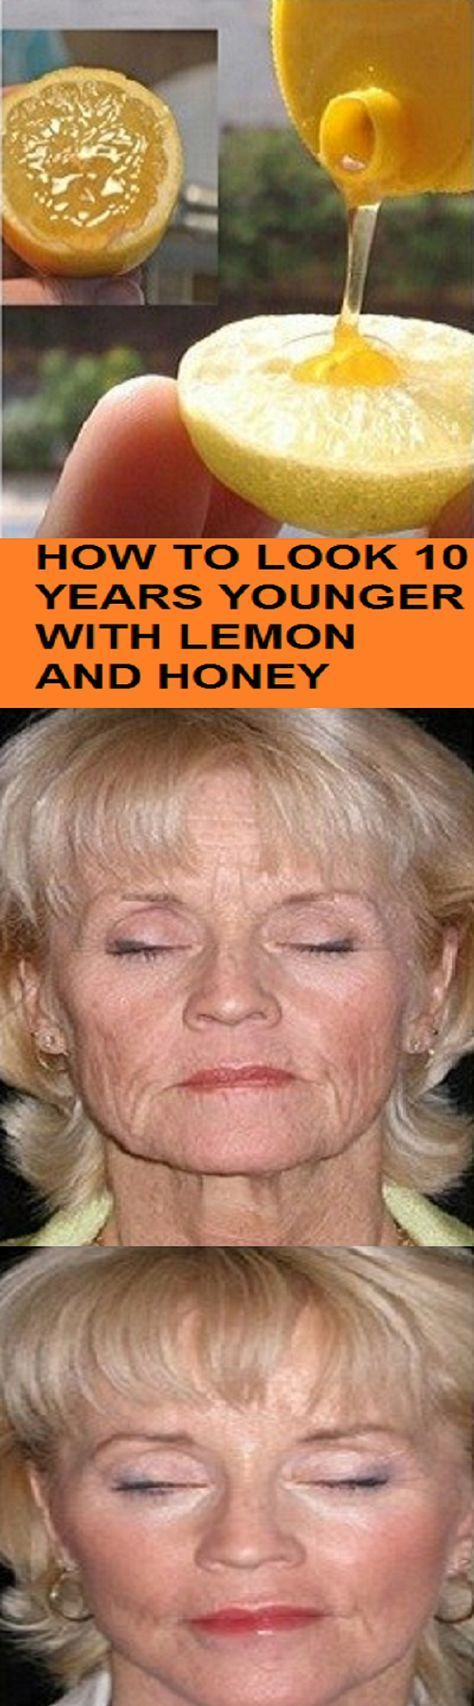 HOW TO LOOK 10 YEARS YOUNGER WITH LEMON AND HONEY